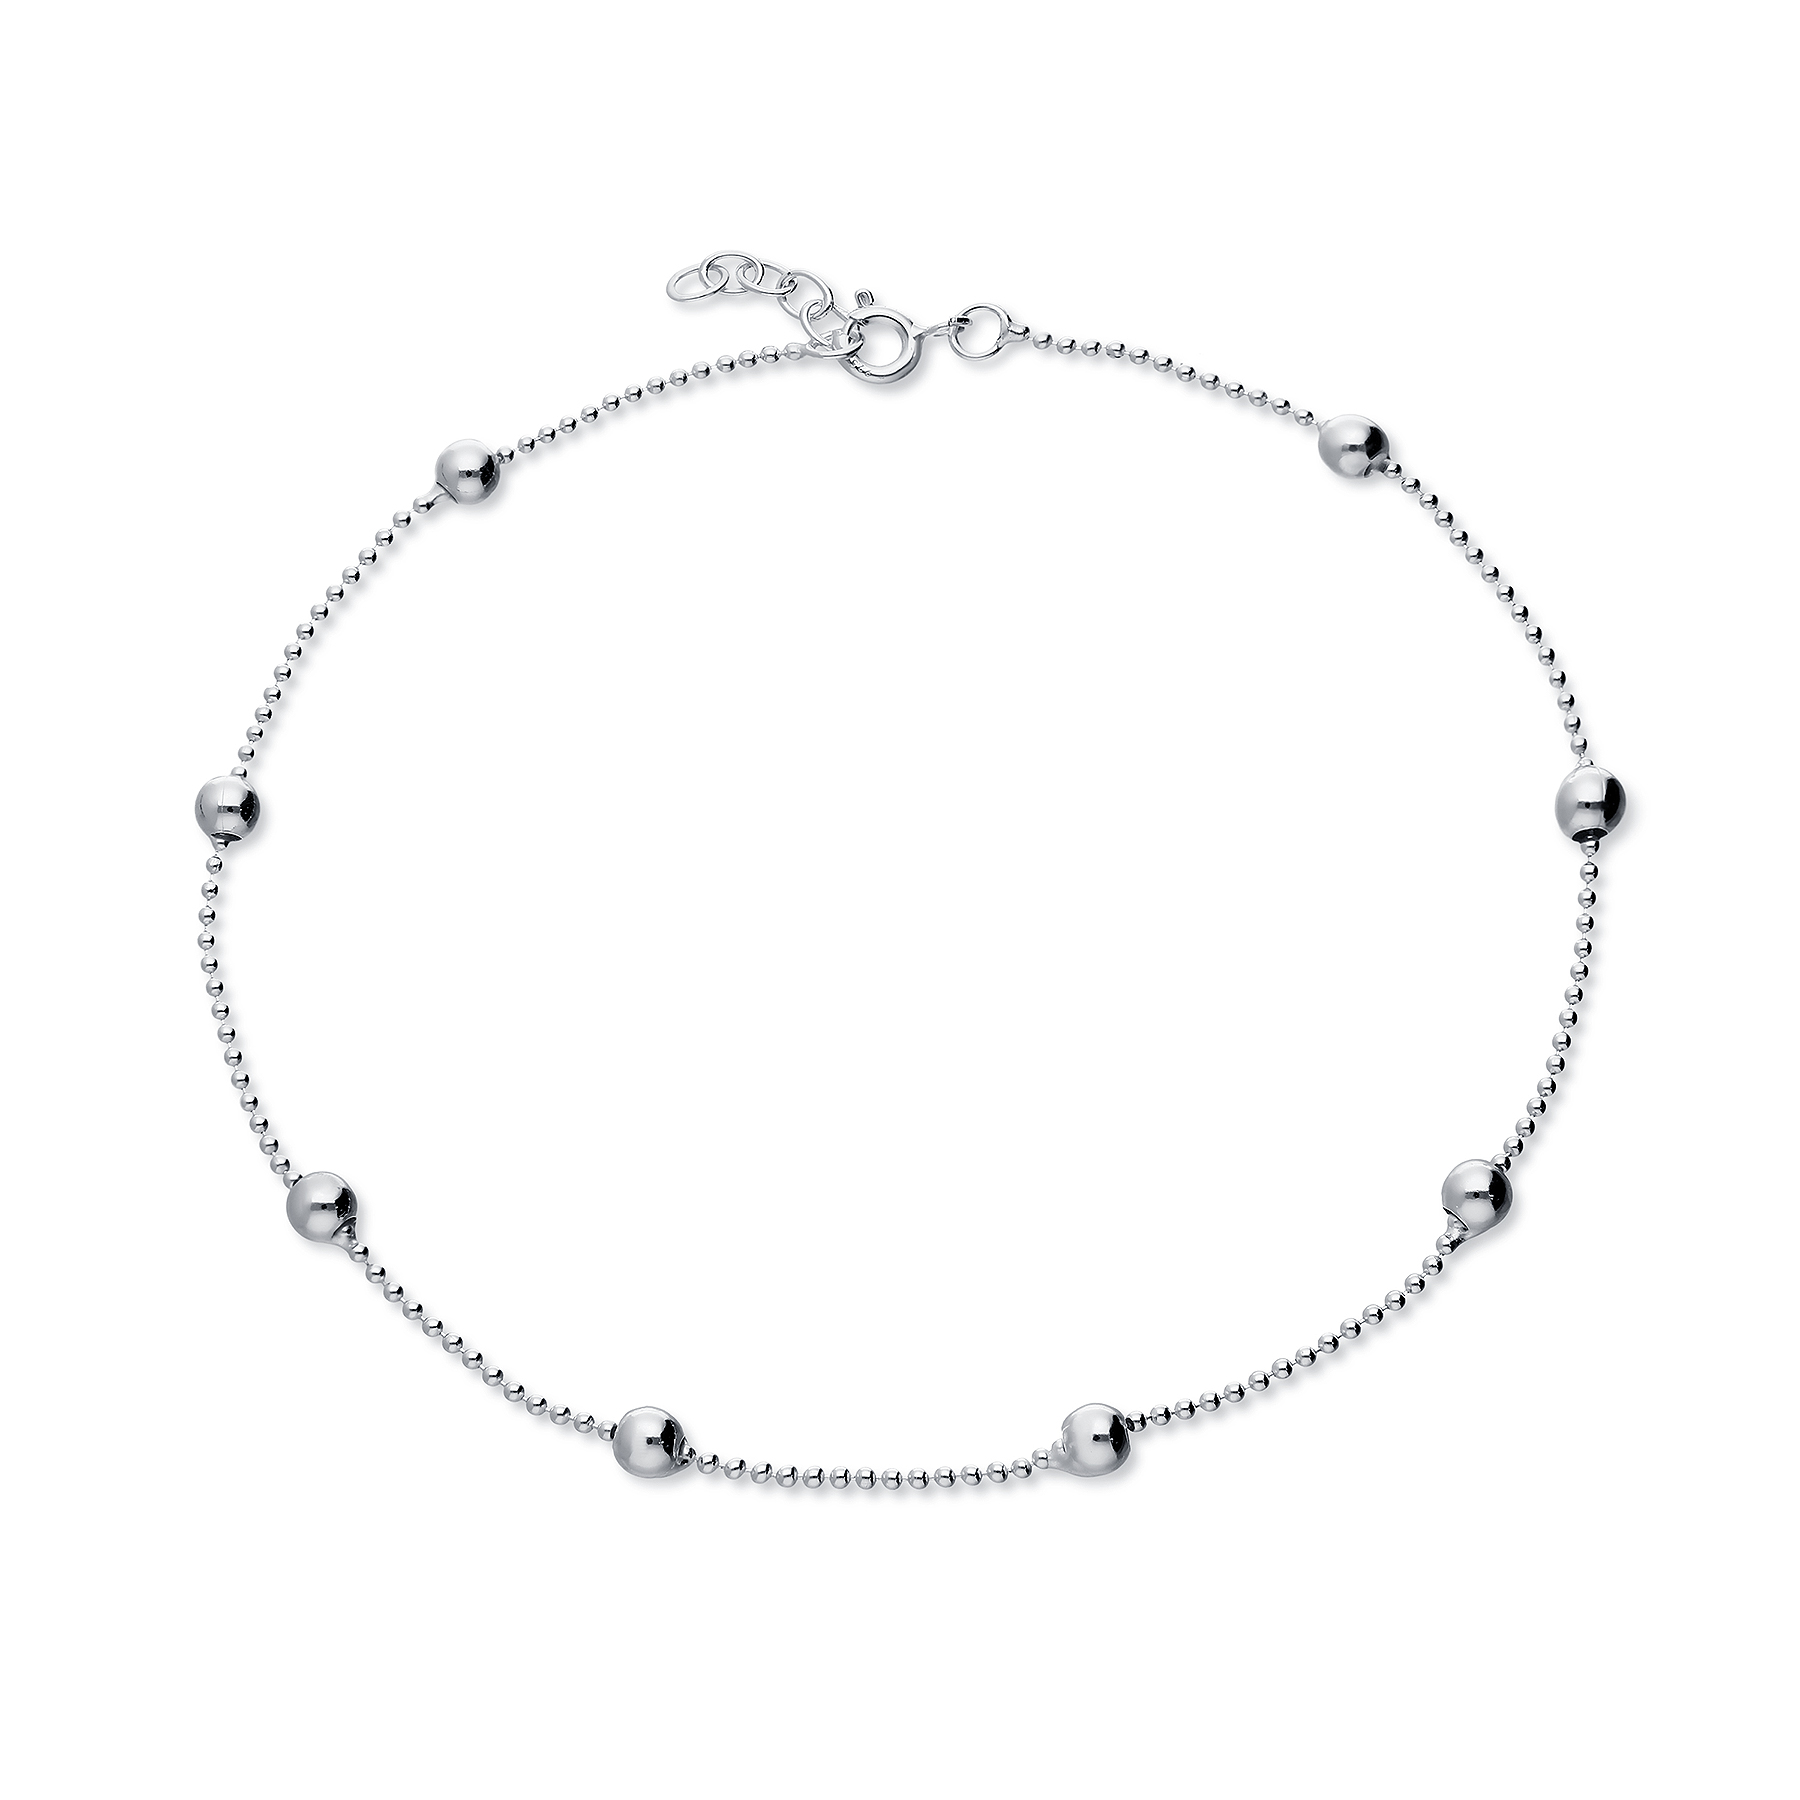 90-175 - 925 Sterling Silver Ball Anklet